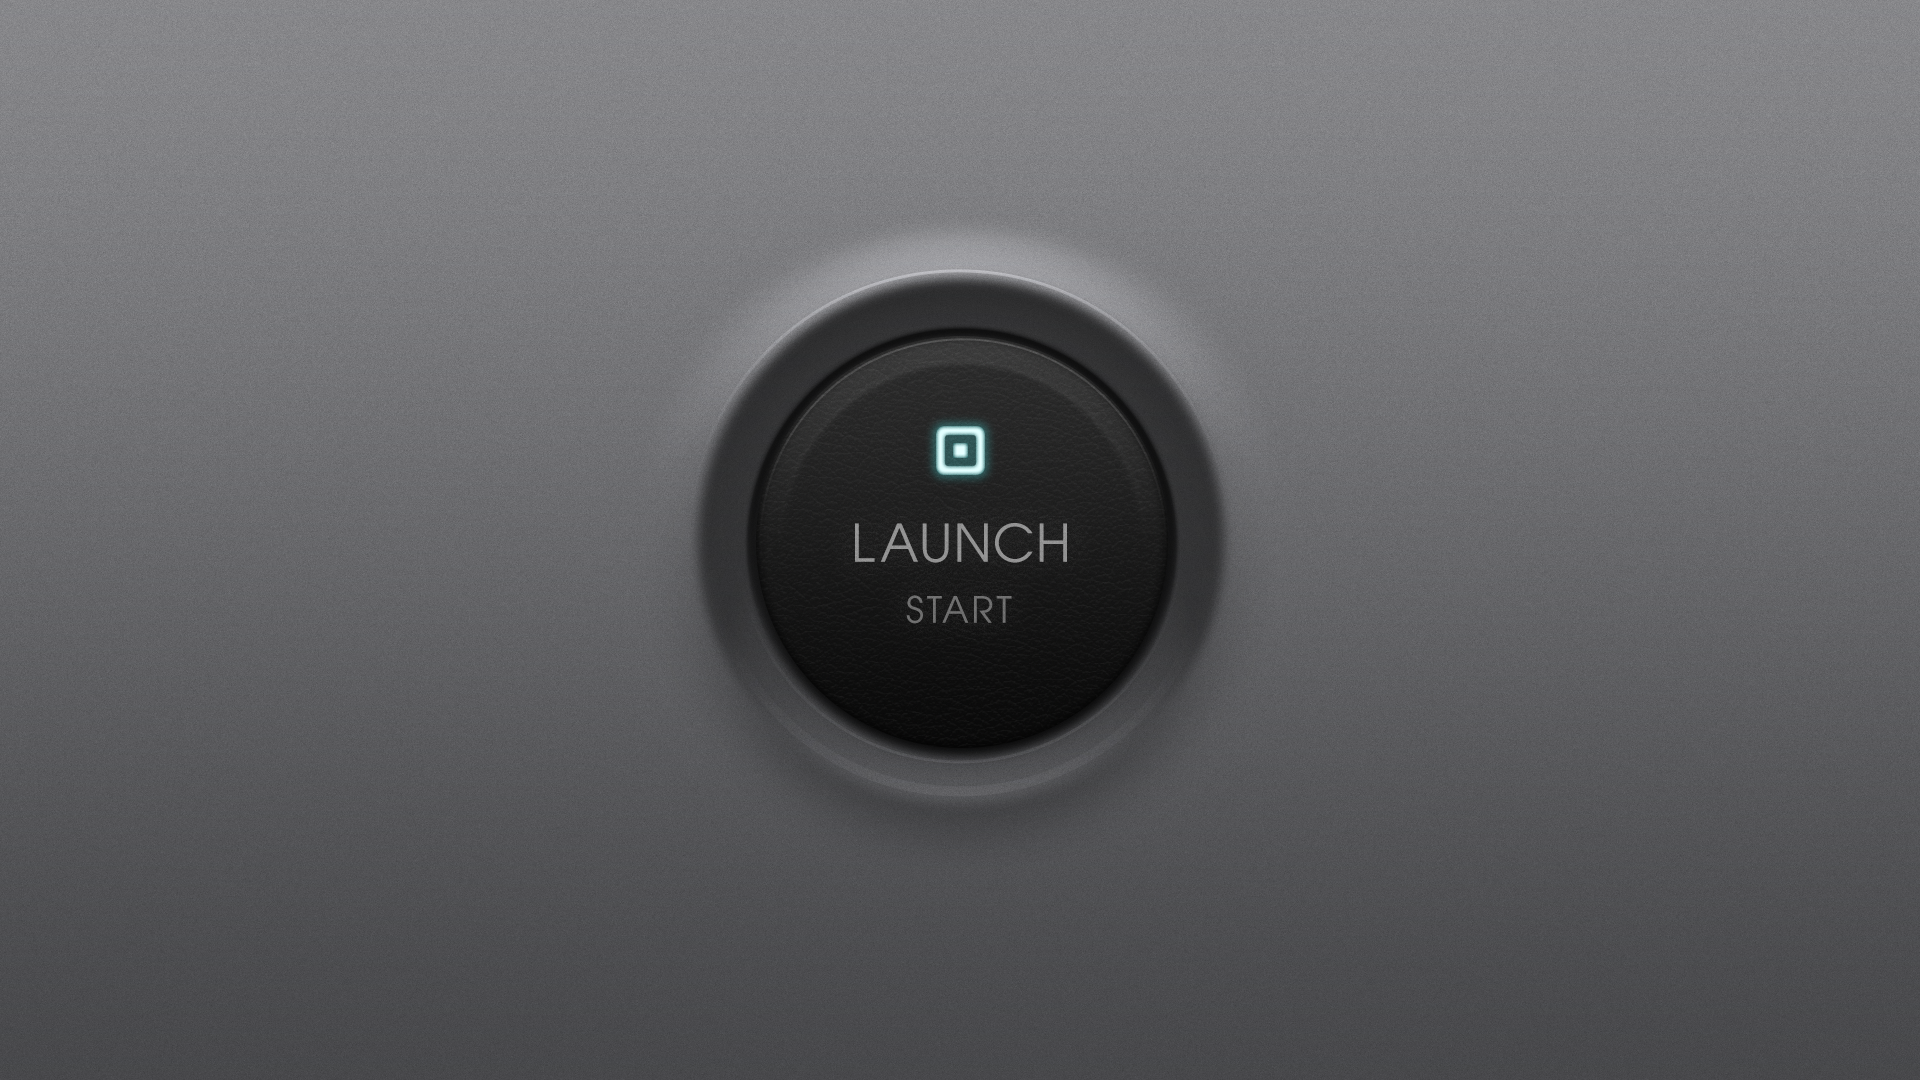 Dribbble - launch-start-button-2.png by Dave Johannes